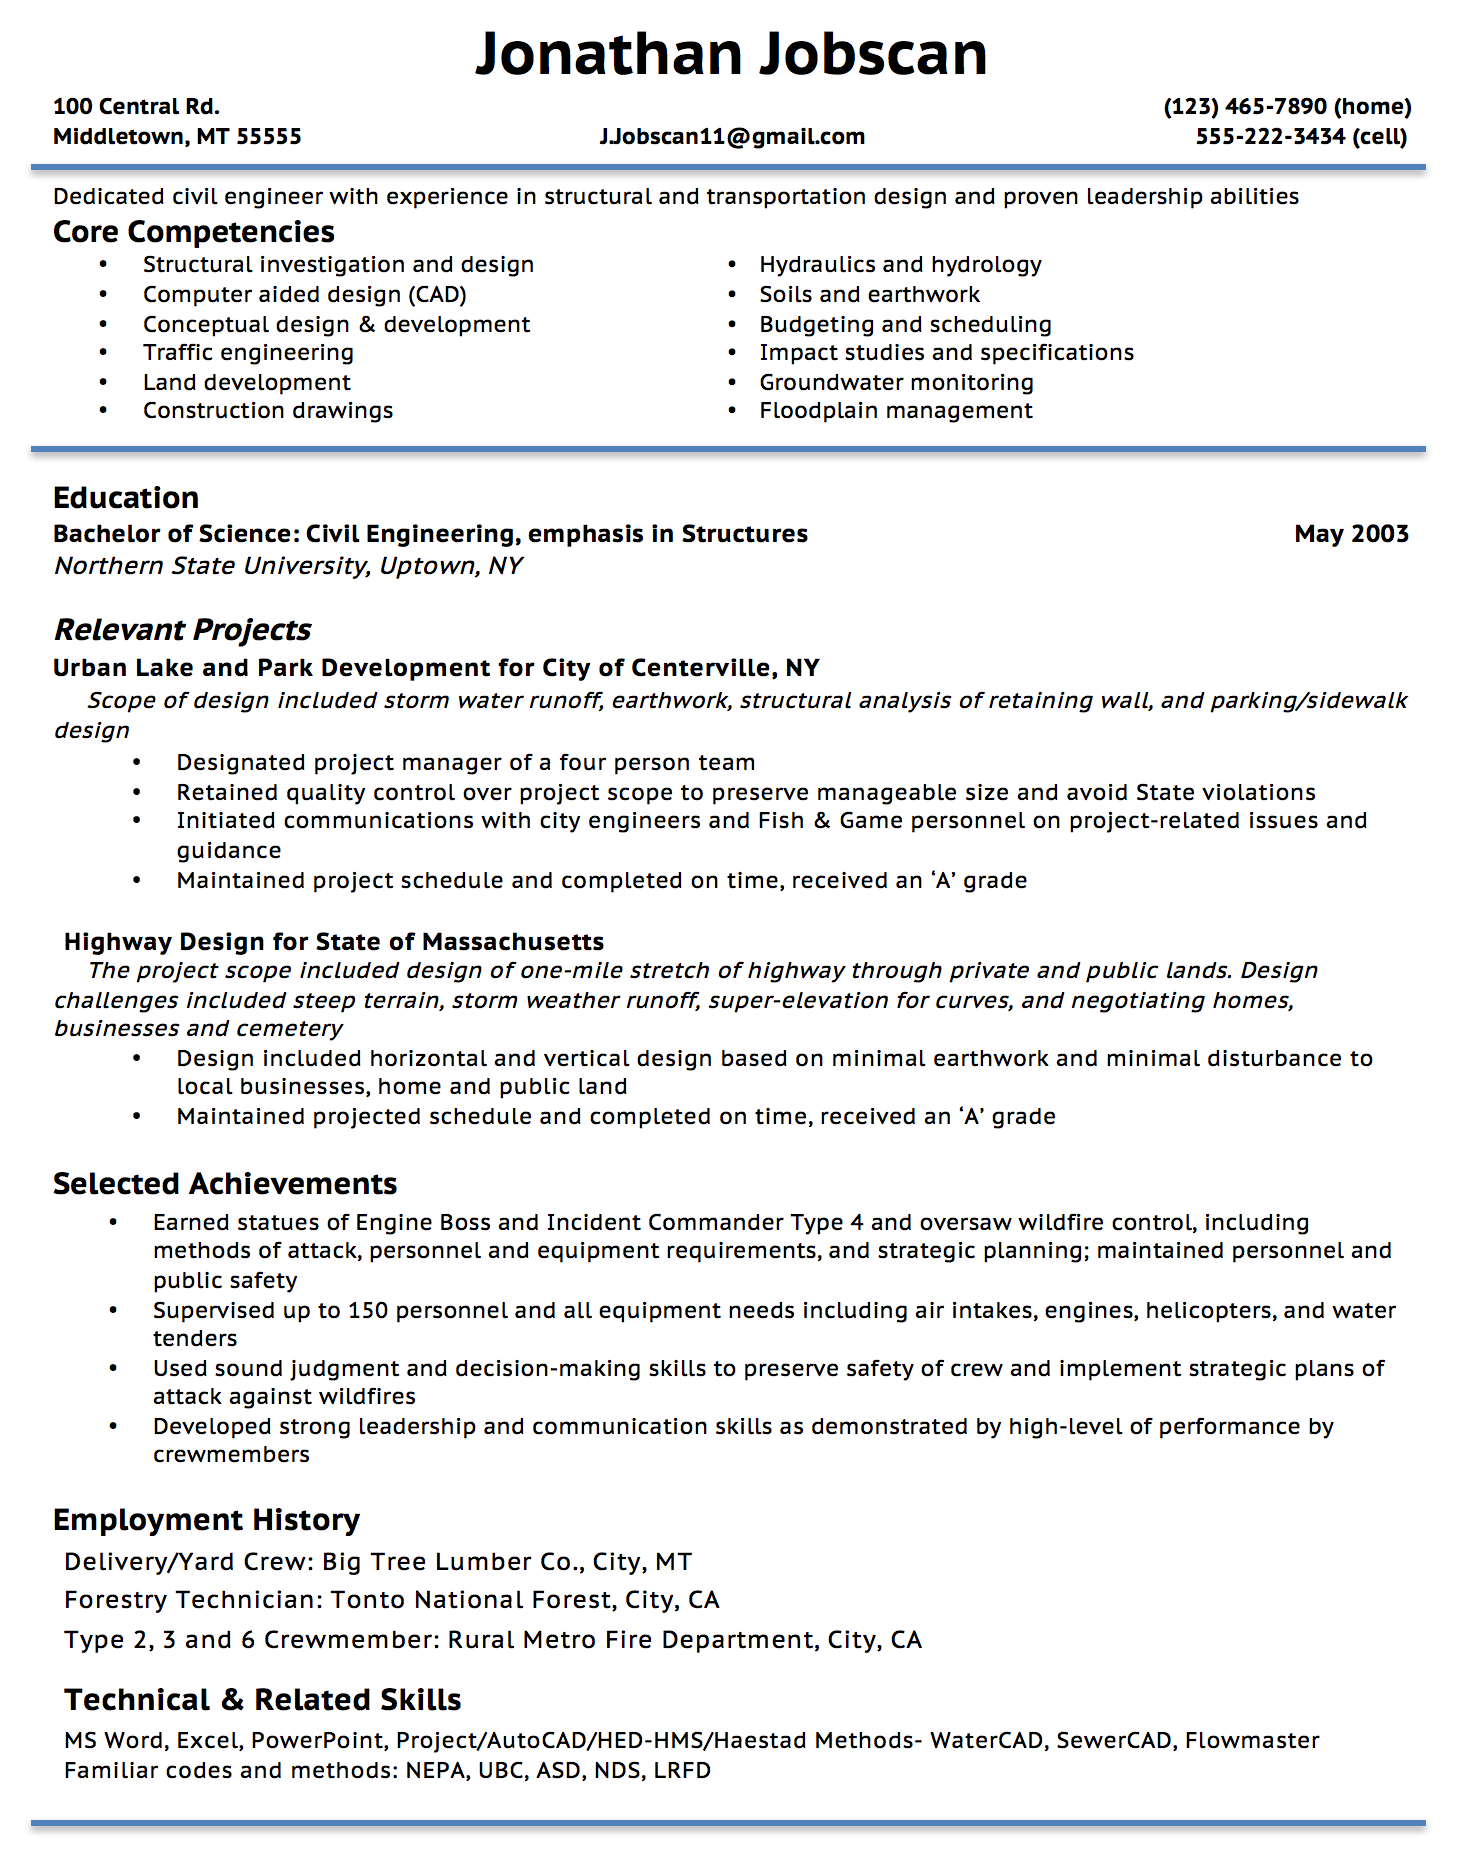 Opposenewapstandardsus  Nice Resume Writing Guide  Jobscan With Excellent Example Of A Functional Resume Format With Easy On The Eye Sample Accountant Resume Also Ui Designer Resume In Addition Finance Resume Objective And Legal Resume Template As Well As Include Gpa On Resume Additionally Office Assistant Job Description Resume From Jobscanco With Opposenewapstandardsus  Excellent Resume Writing Guide  Jobscan With Easy On The Eye Example Of A Functional Resume Format And Nice Sample Accountant Resume Also Ui Designer Resume In Addition Finance Resume Objective From Jobscanco